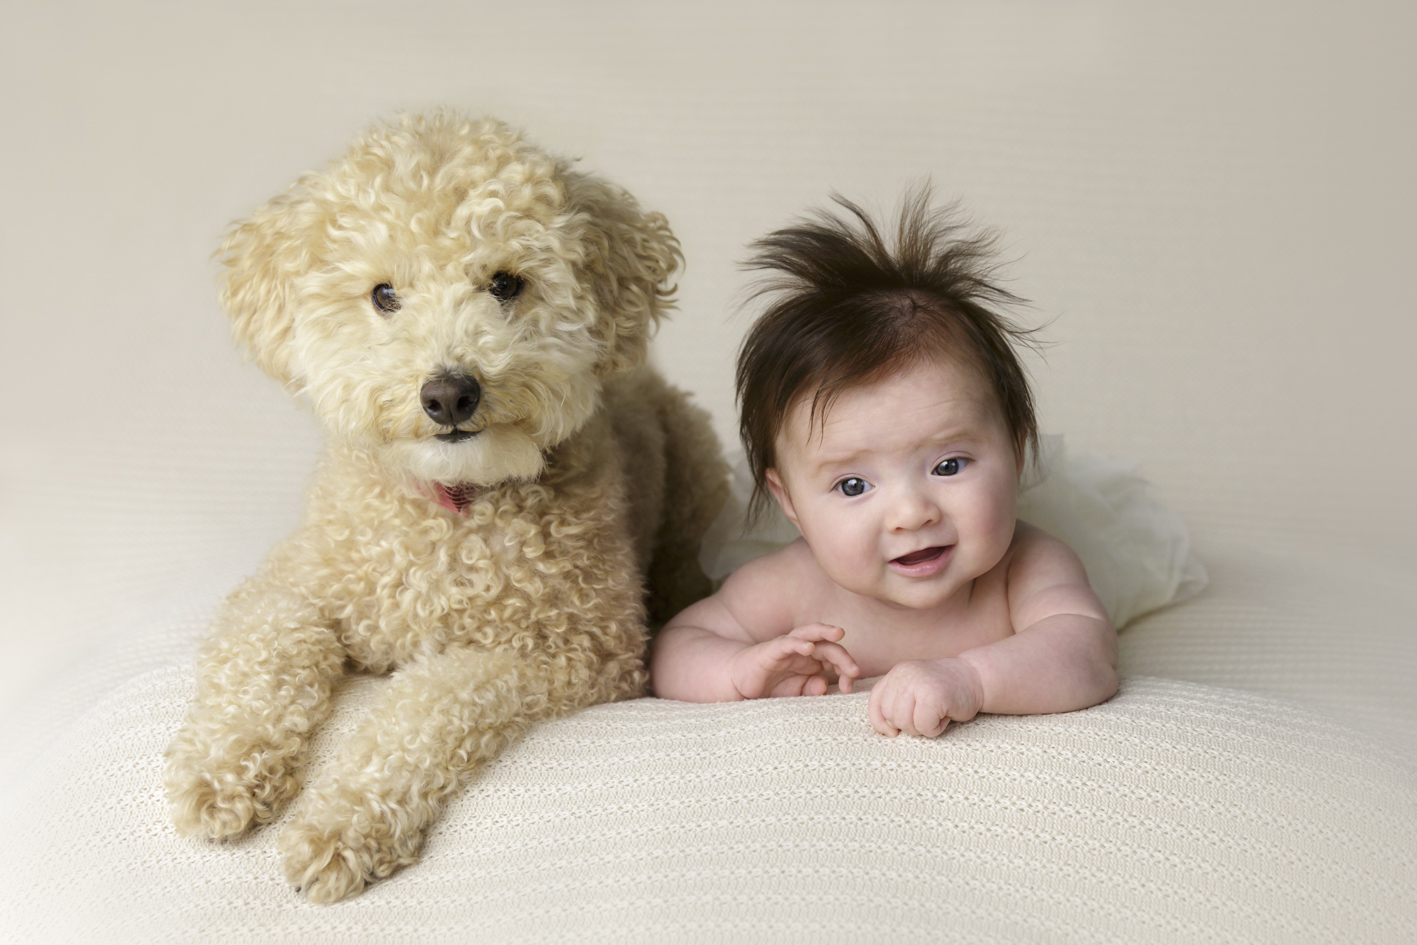 4 month baby girl with her dog